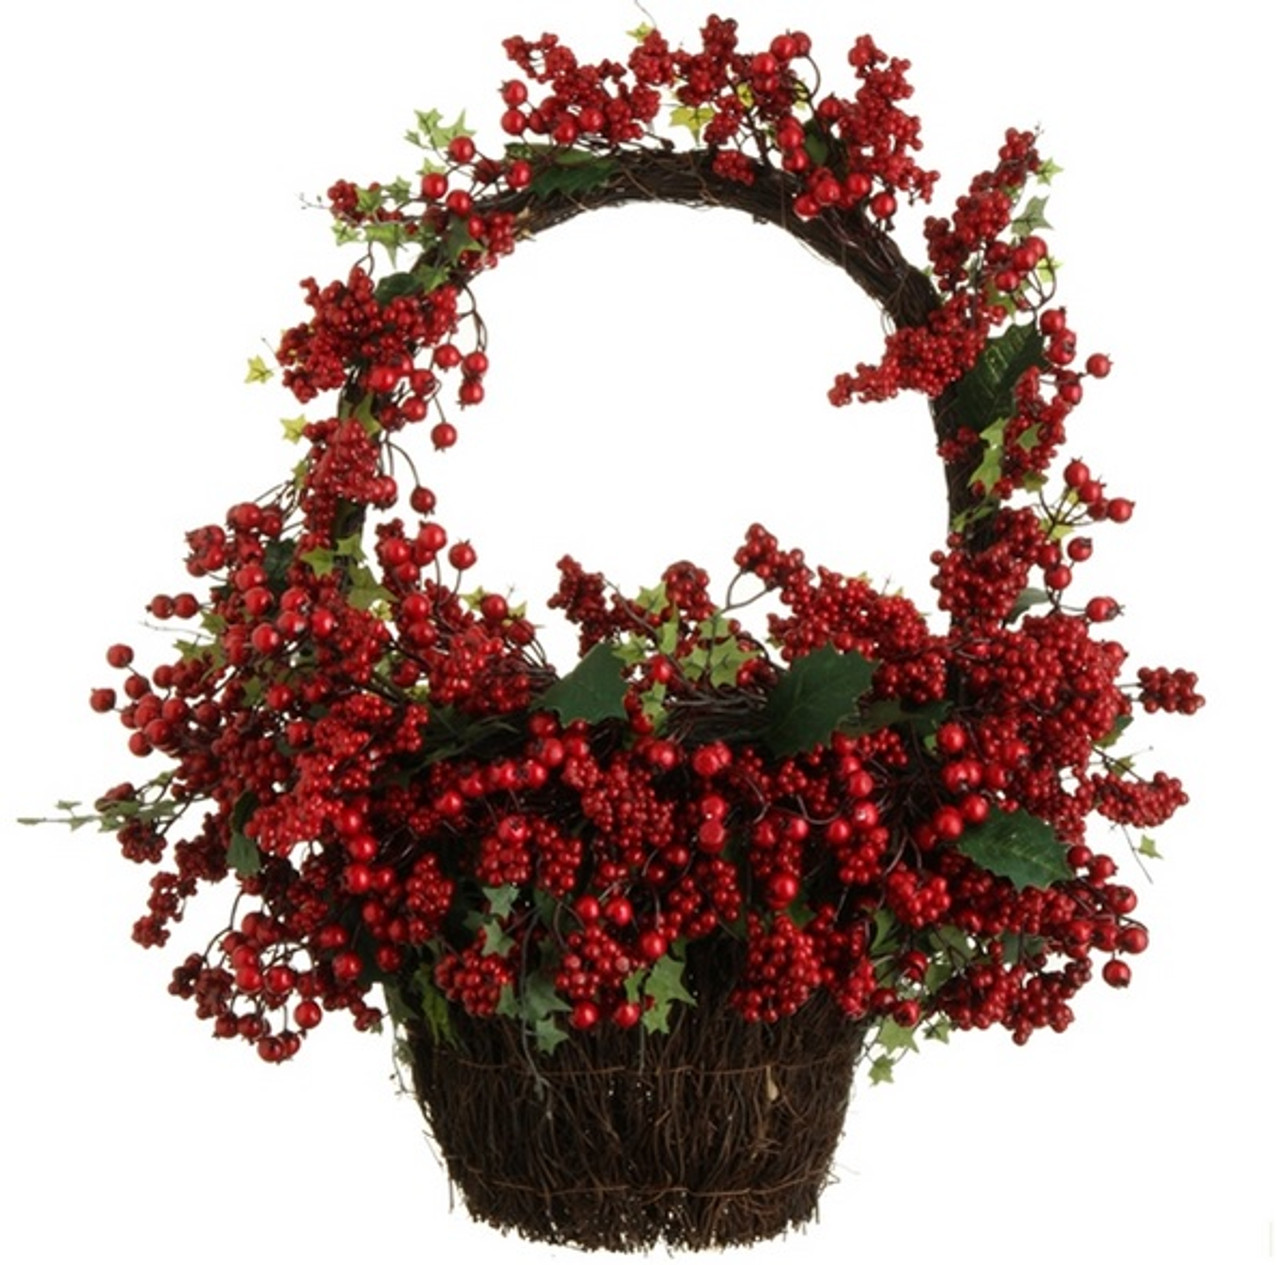 Christmas Vines.22 Country Rustic Red Rosehip Berries And Vines Decorative Christmas Wall Basket 31729766